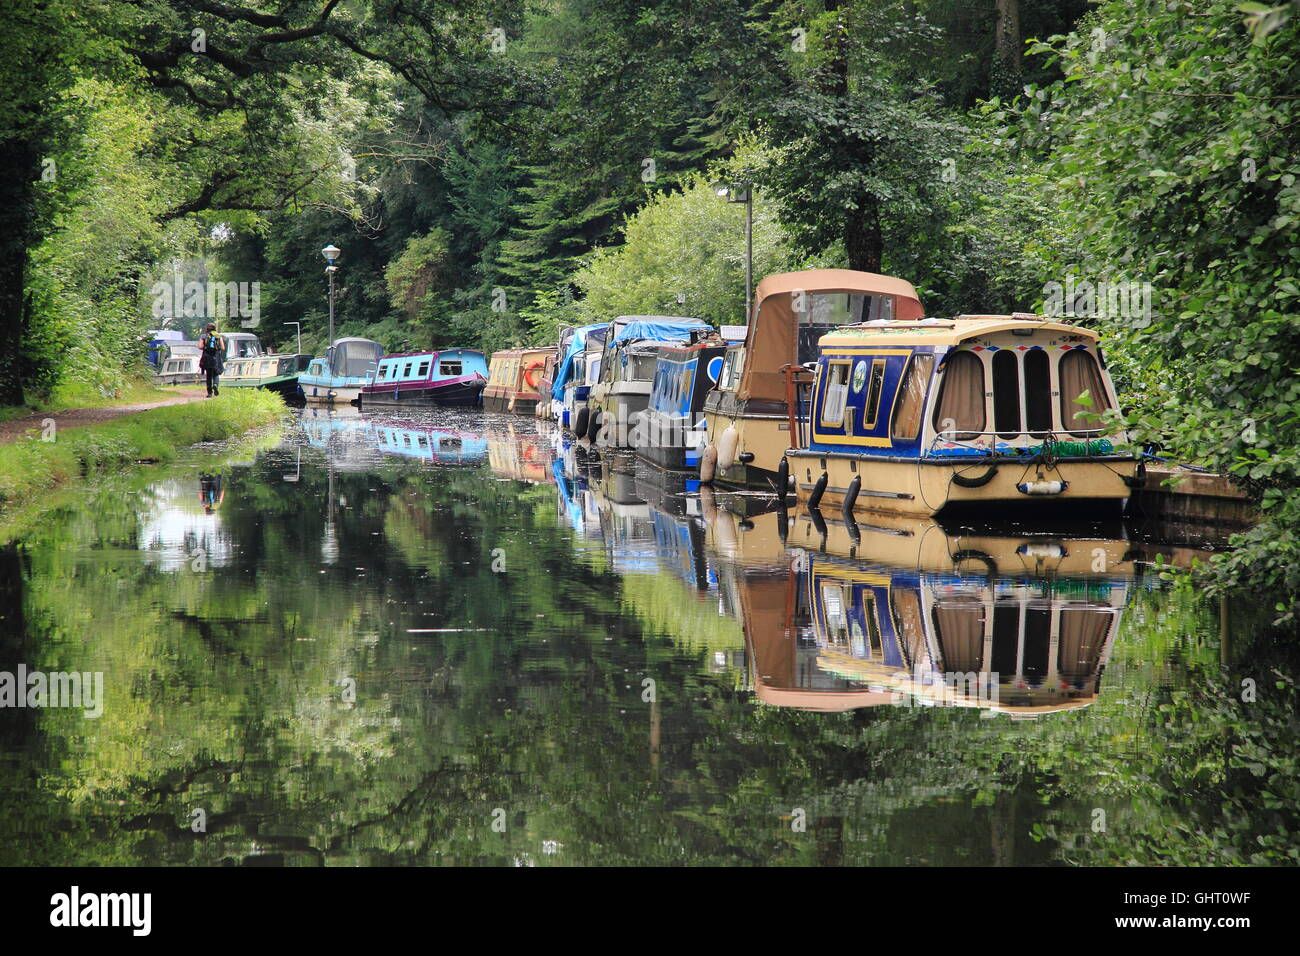 Narrowboats moored on the Monmouthshire and Brecon Canal at Goytre Wharf near Abergavenny, South Wales, Cymru, UK - Stock Image